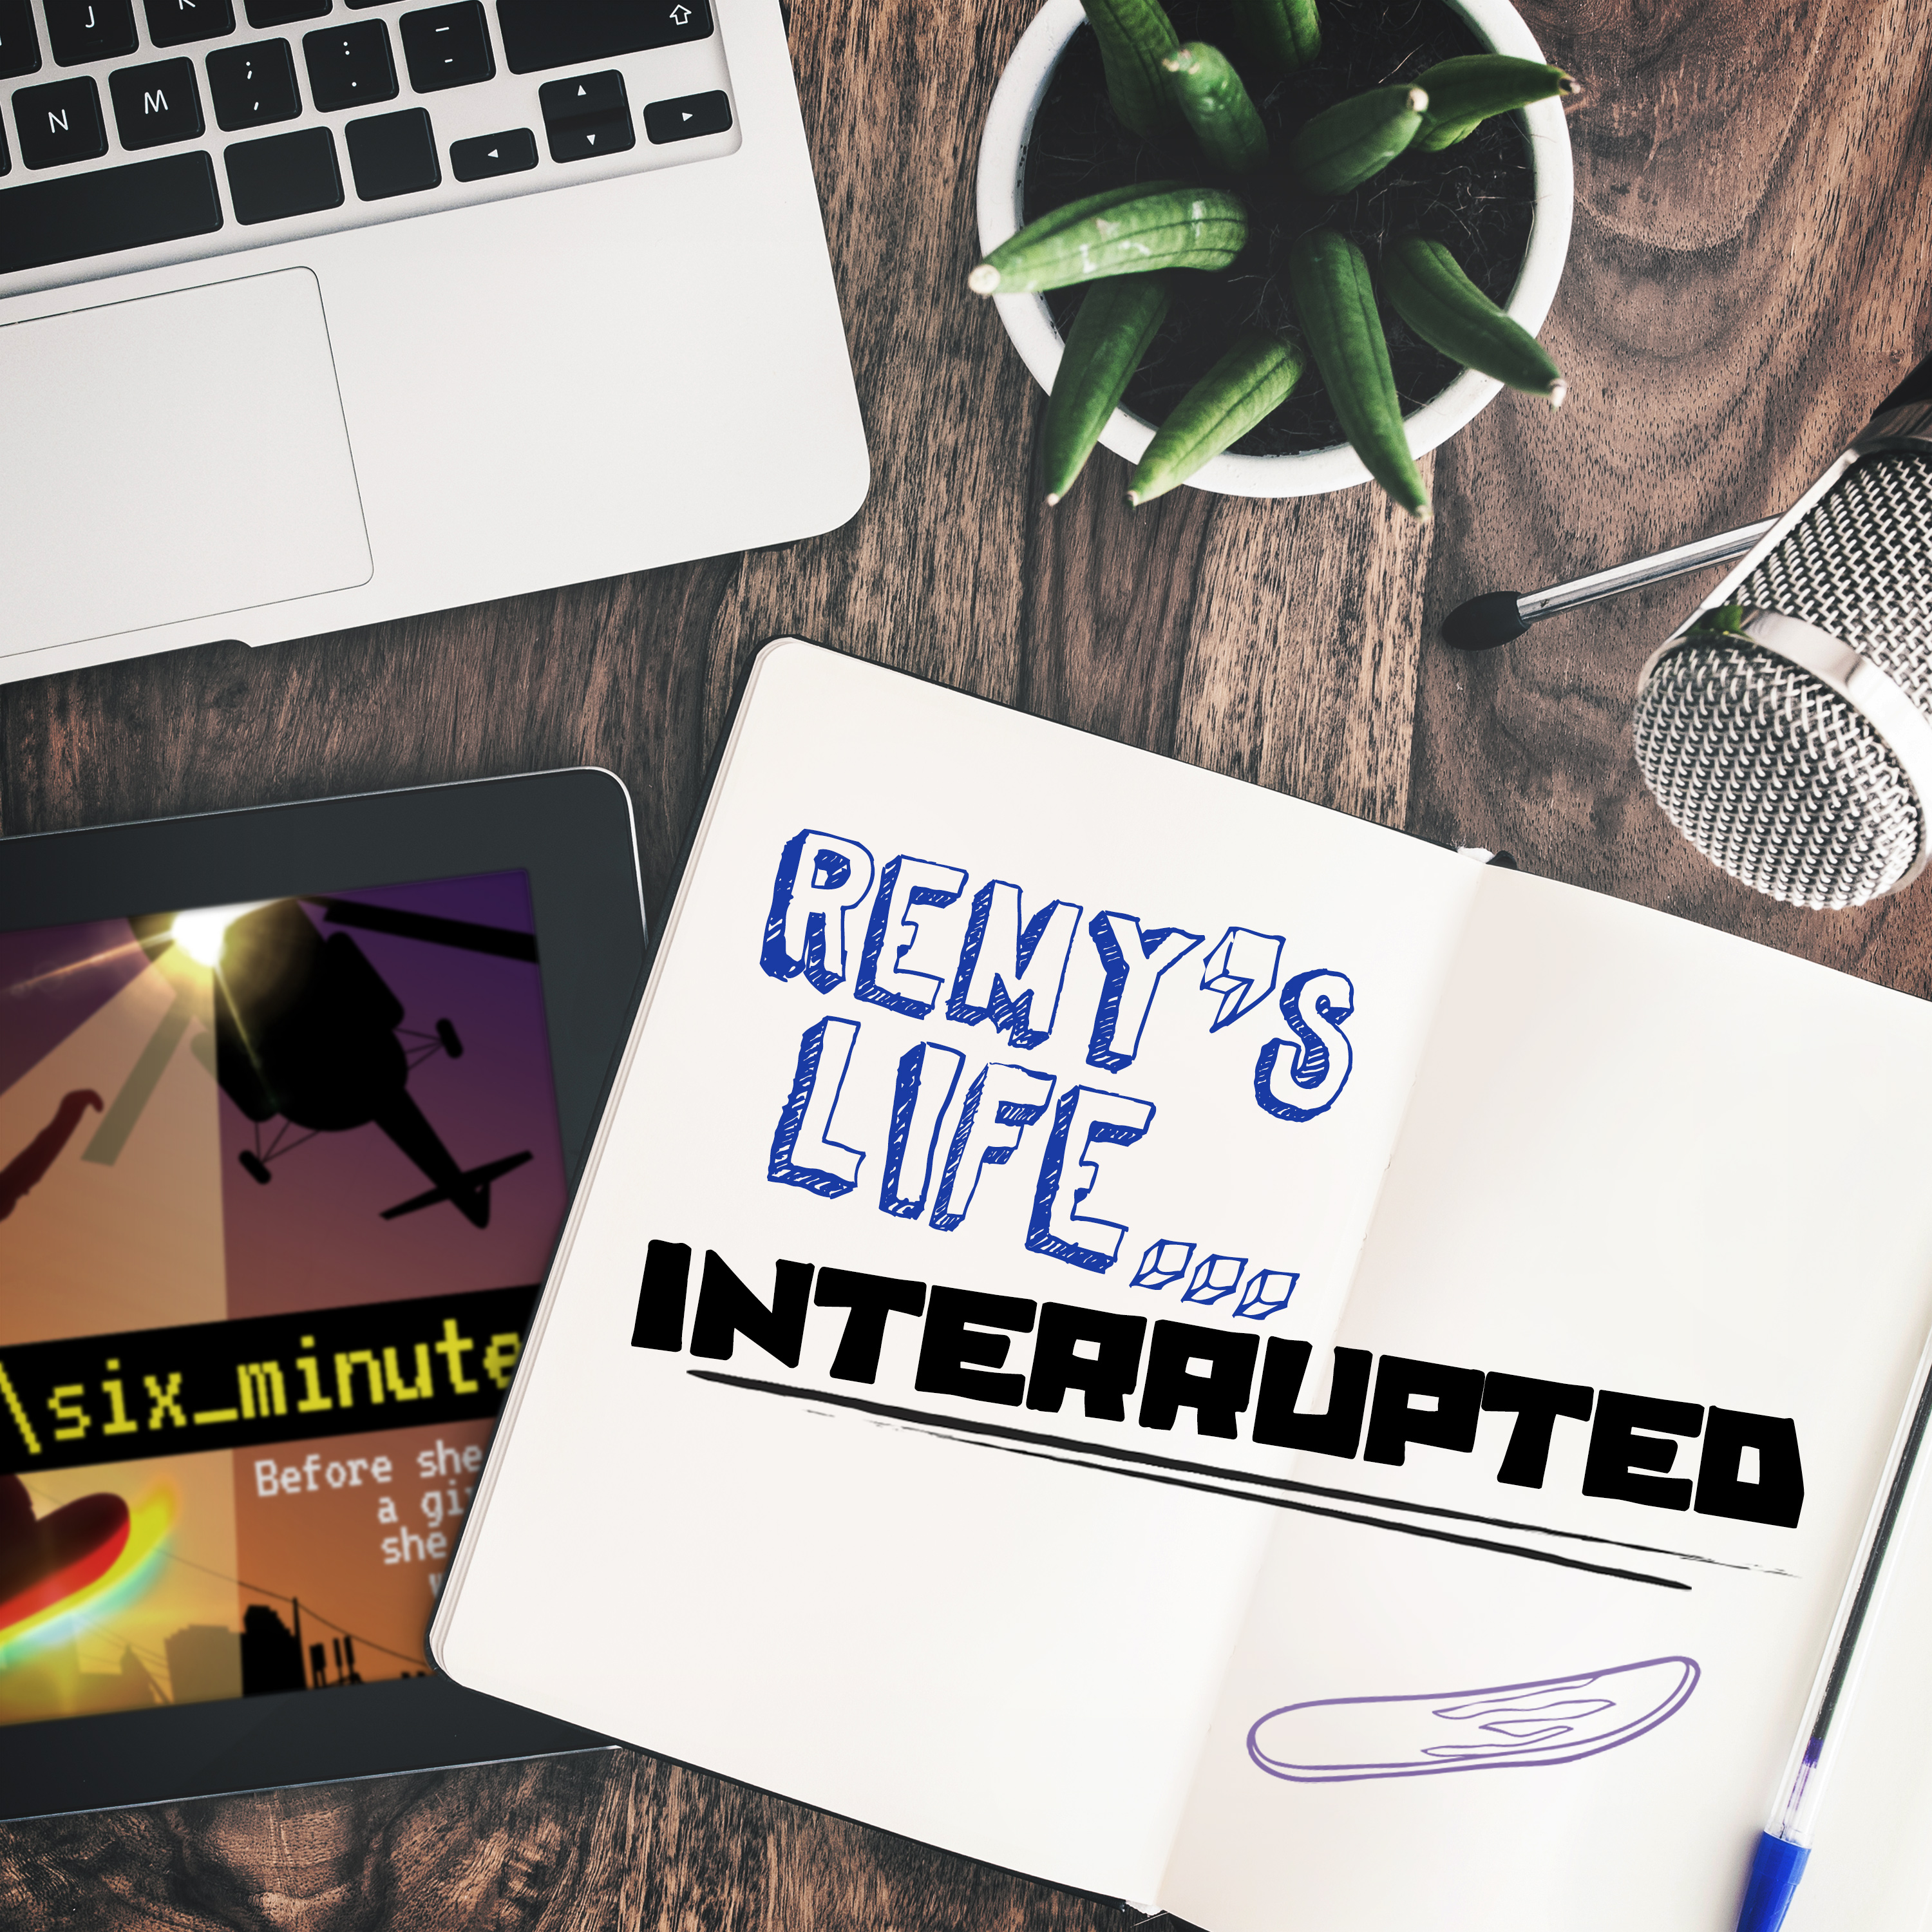 Remy's Life Interrupted: EP63